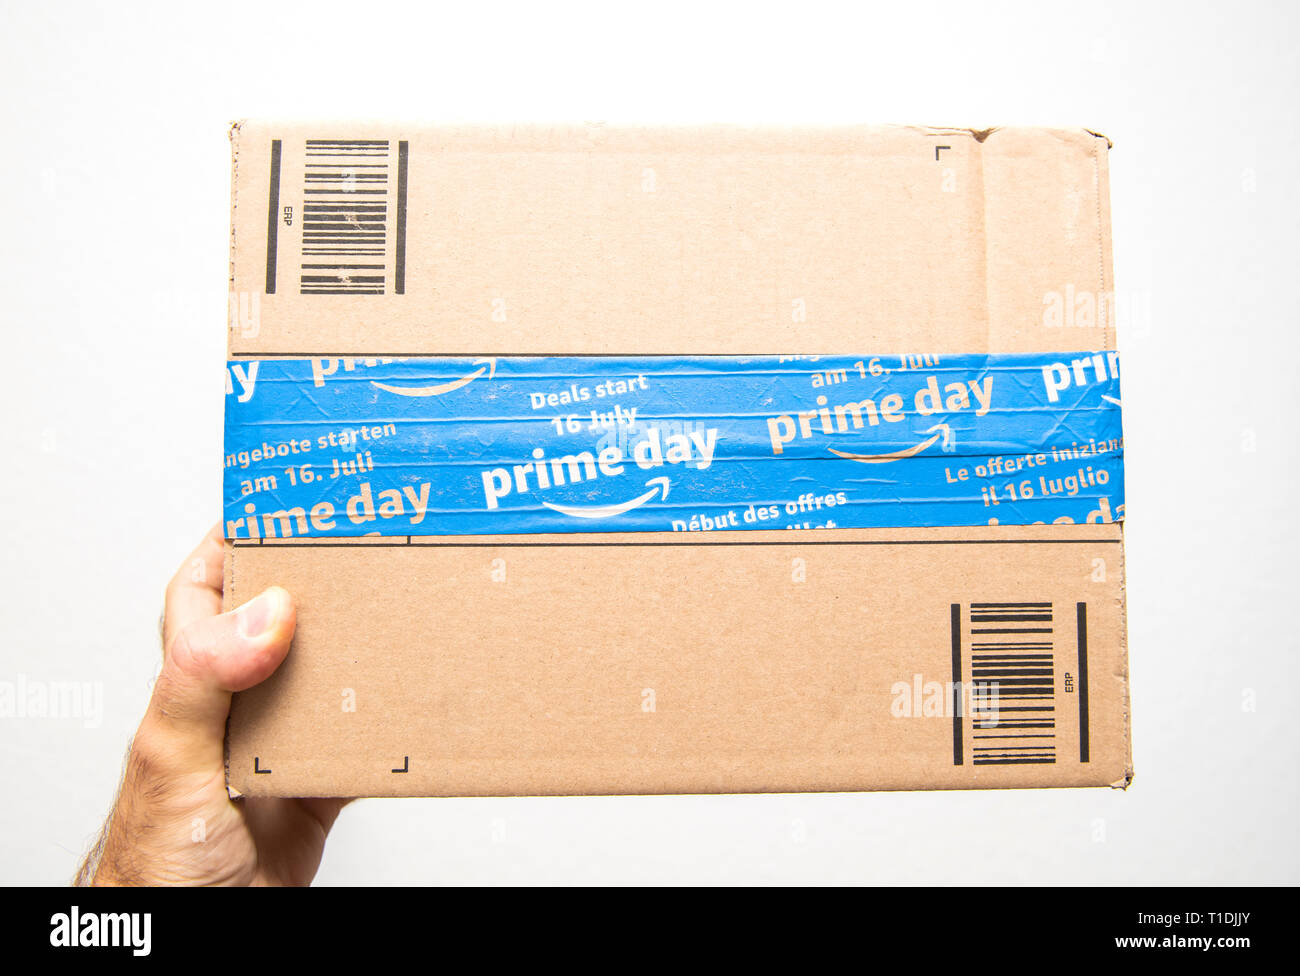 Paris, France - Jul 11, 2018: Man hand holding against white background sealed with special scotch tape of Amazon Prime parcel delivery - Stock Image